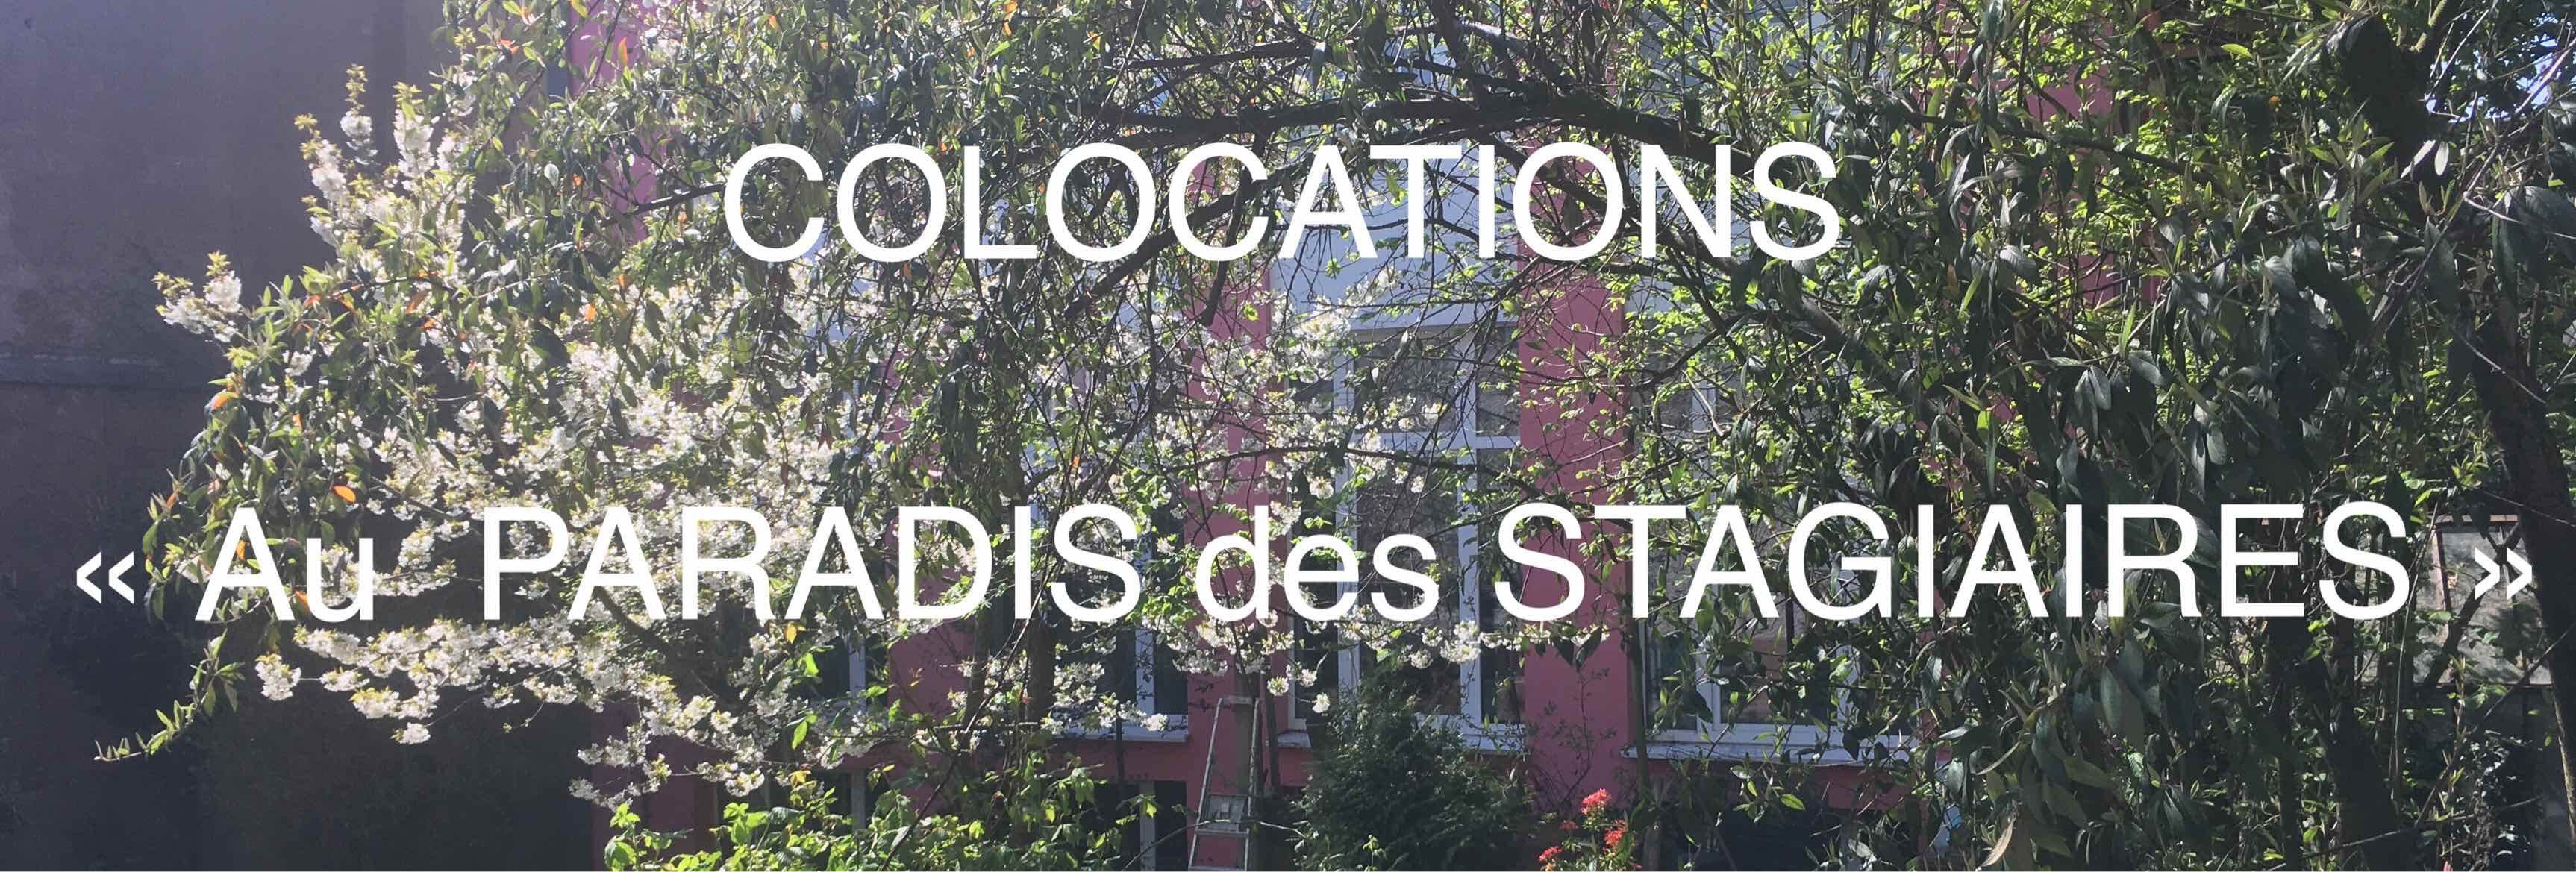 Colocations duluxembourg Paradis des Stagiaires